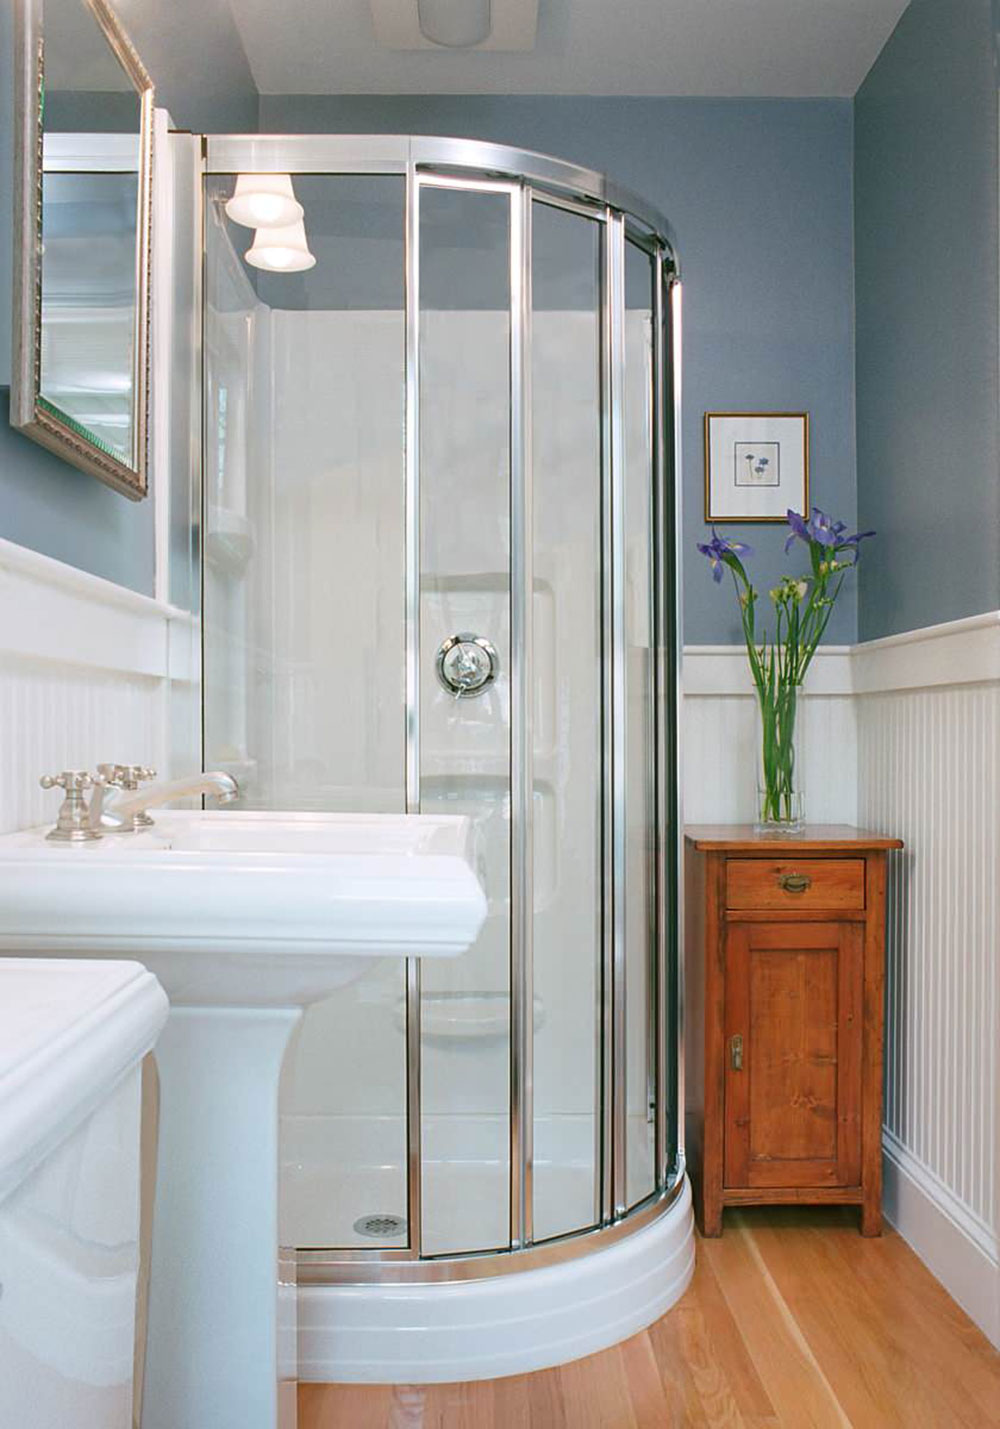 Designing A Small Bathroom How To Make A Small Bathroom Look Bigger Tips And Ideas